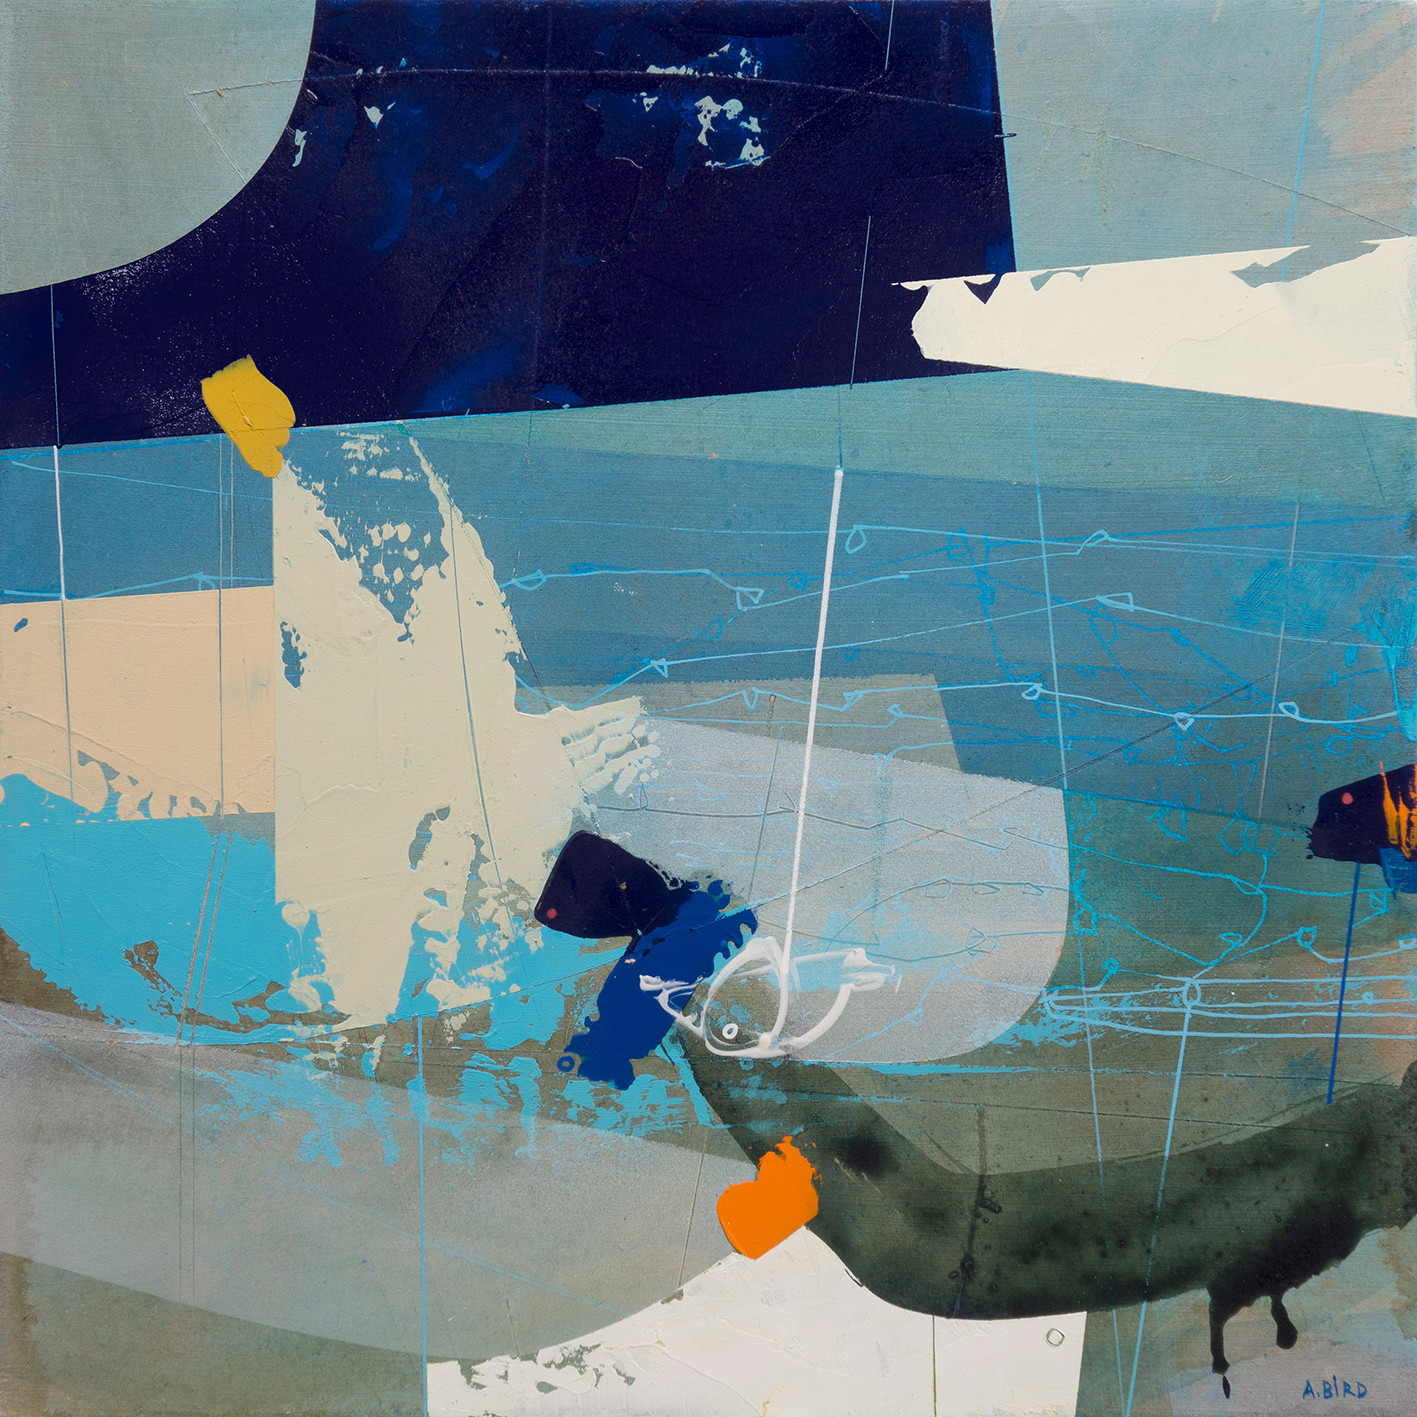 <span class=&#34;link fancybox-details-link&#34;><a href=&#34;/artists/77-andrew-bird/works/5230-andrew-bird-anchorage-2017-18/&#34;>View Detail Page</a></span><div class=&#34;artist&#34;><strong>Andrew Bird</strong></div> 1969 – <div class=&#34;title&#34;><em>Anchorage</em>, 2017/18</div> <div class=&#34;signed_and_dated&#34;>signed</div> <div class=&#34;medium&#34;>acrylic on board</div> <div class=&#34;dimensions&#34;>h 29 x w 29 cm<br /> 11 3/8 x 11 3/8 in</div><div class=&#34;price&#34;>£775.00</div><div class=&#34;copyright_line&#34;>OwnArt: £ 77.50 x 10 Months, 0% APR</div>